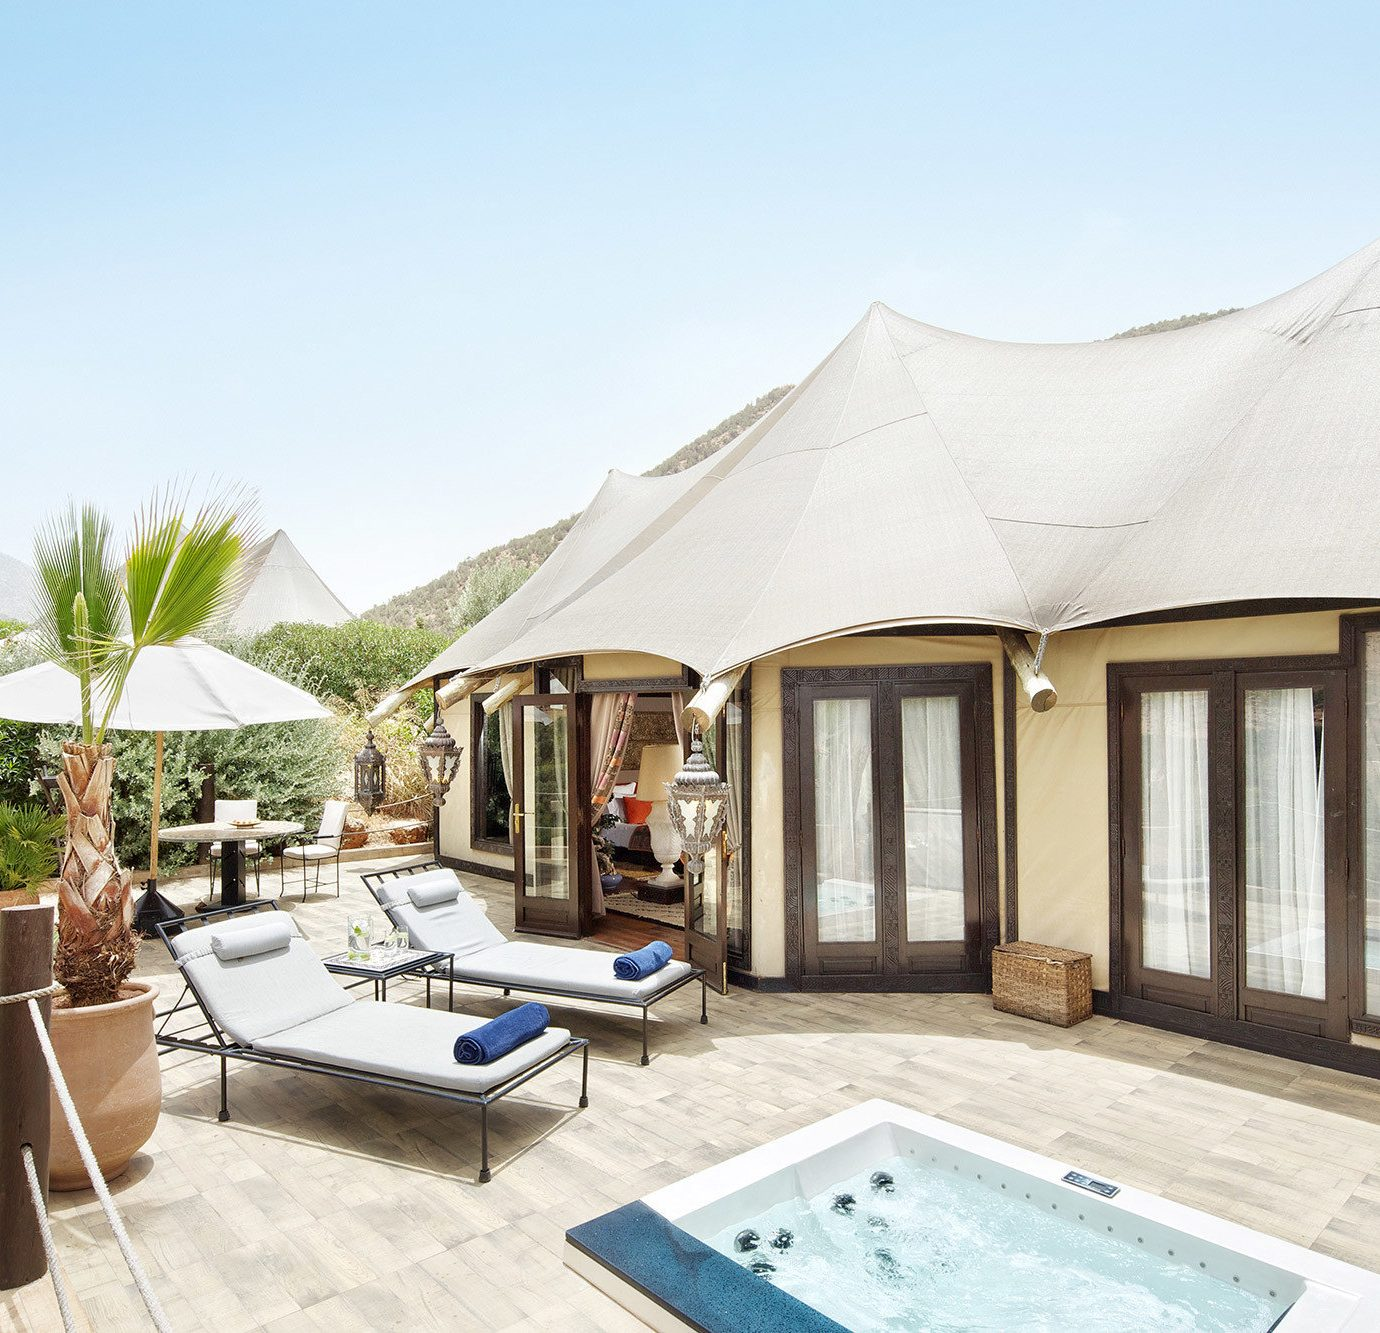 sky property swimming pool building Villa Resort home tent cottage backyard day